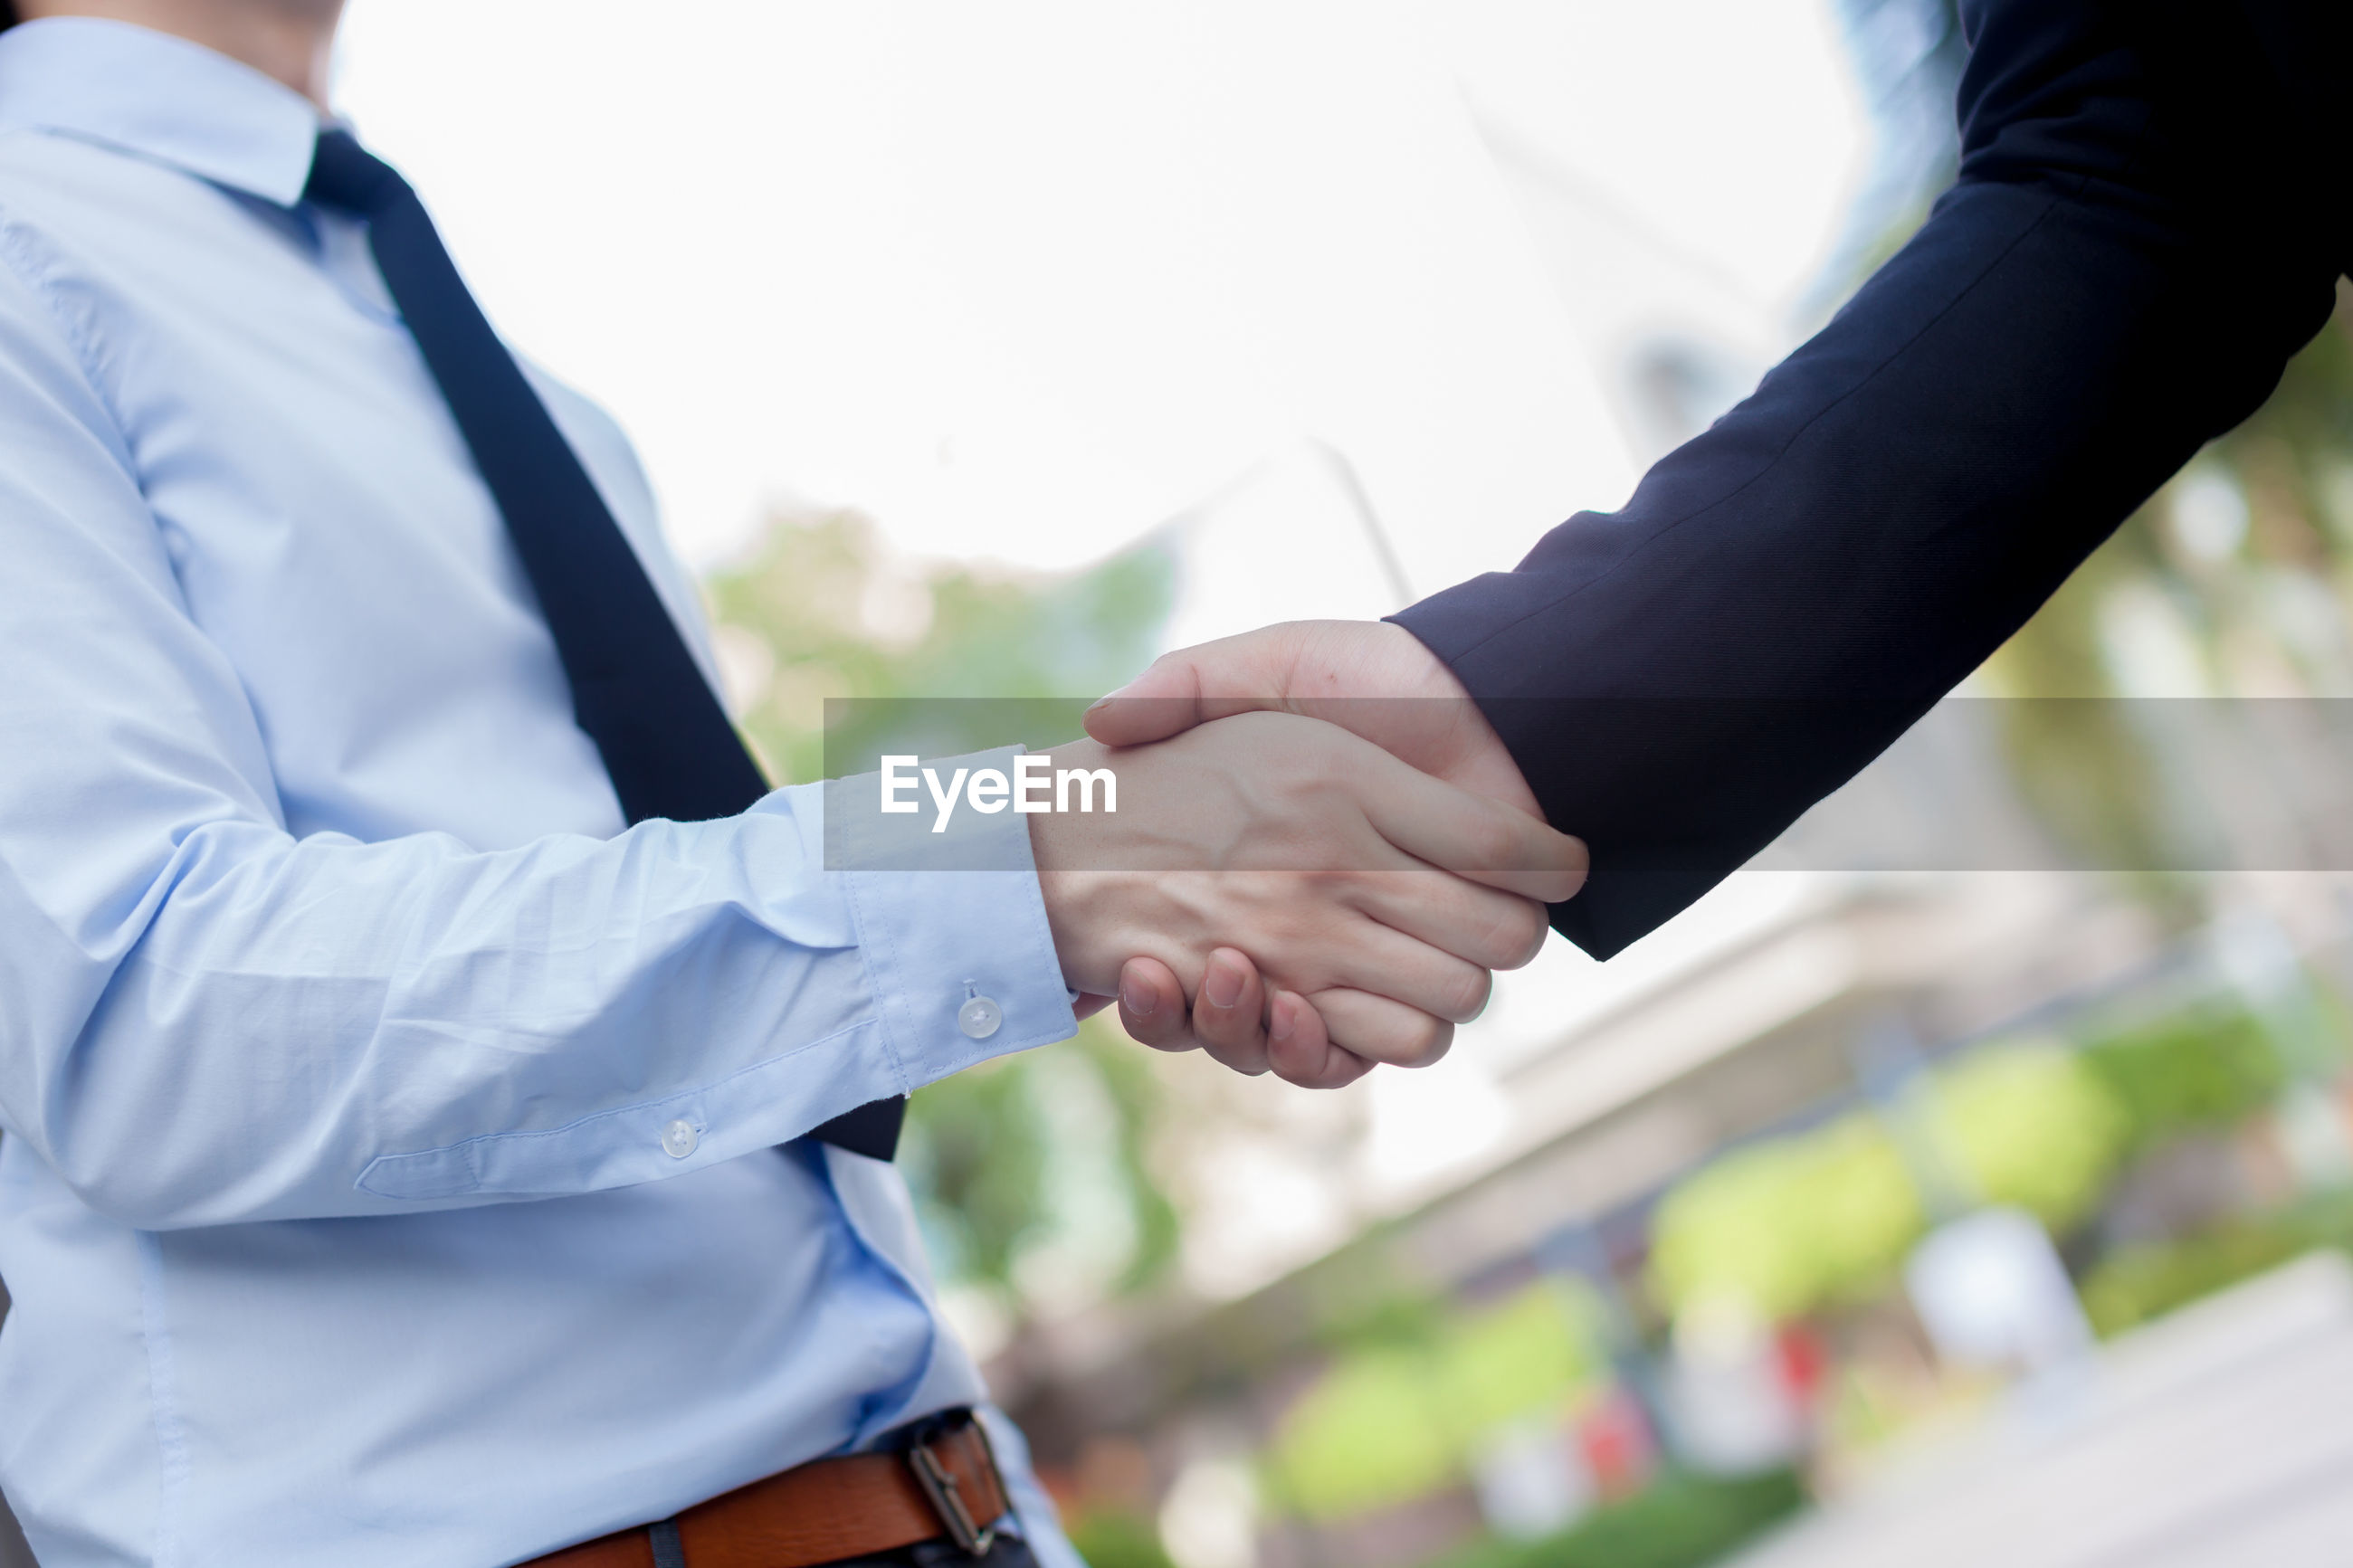 Cropped image of colleagues shaking hands in city